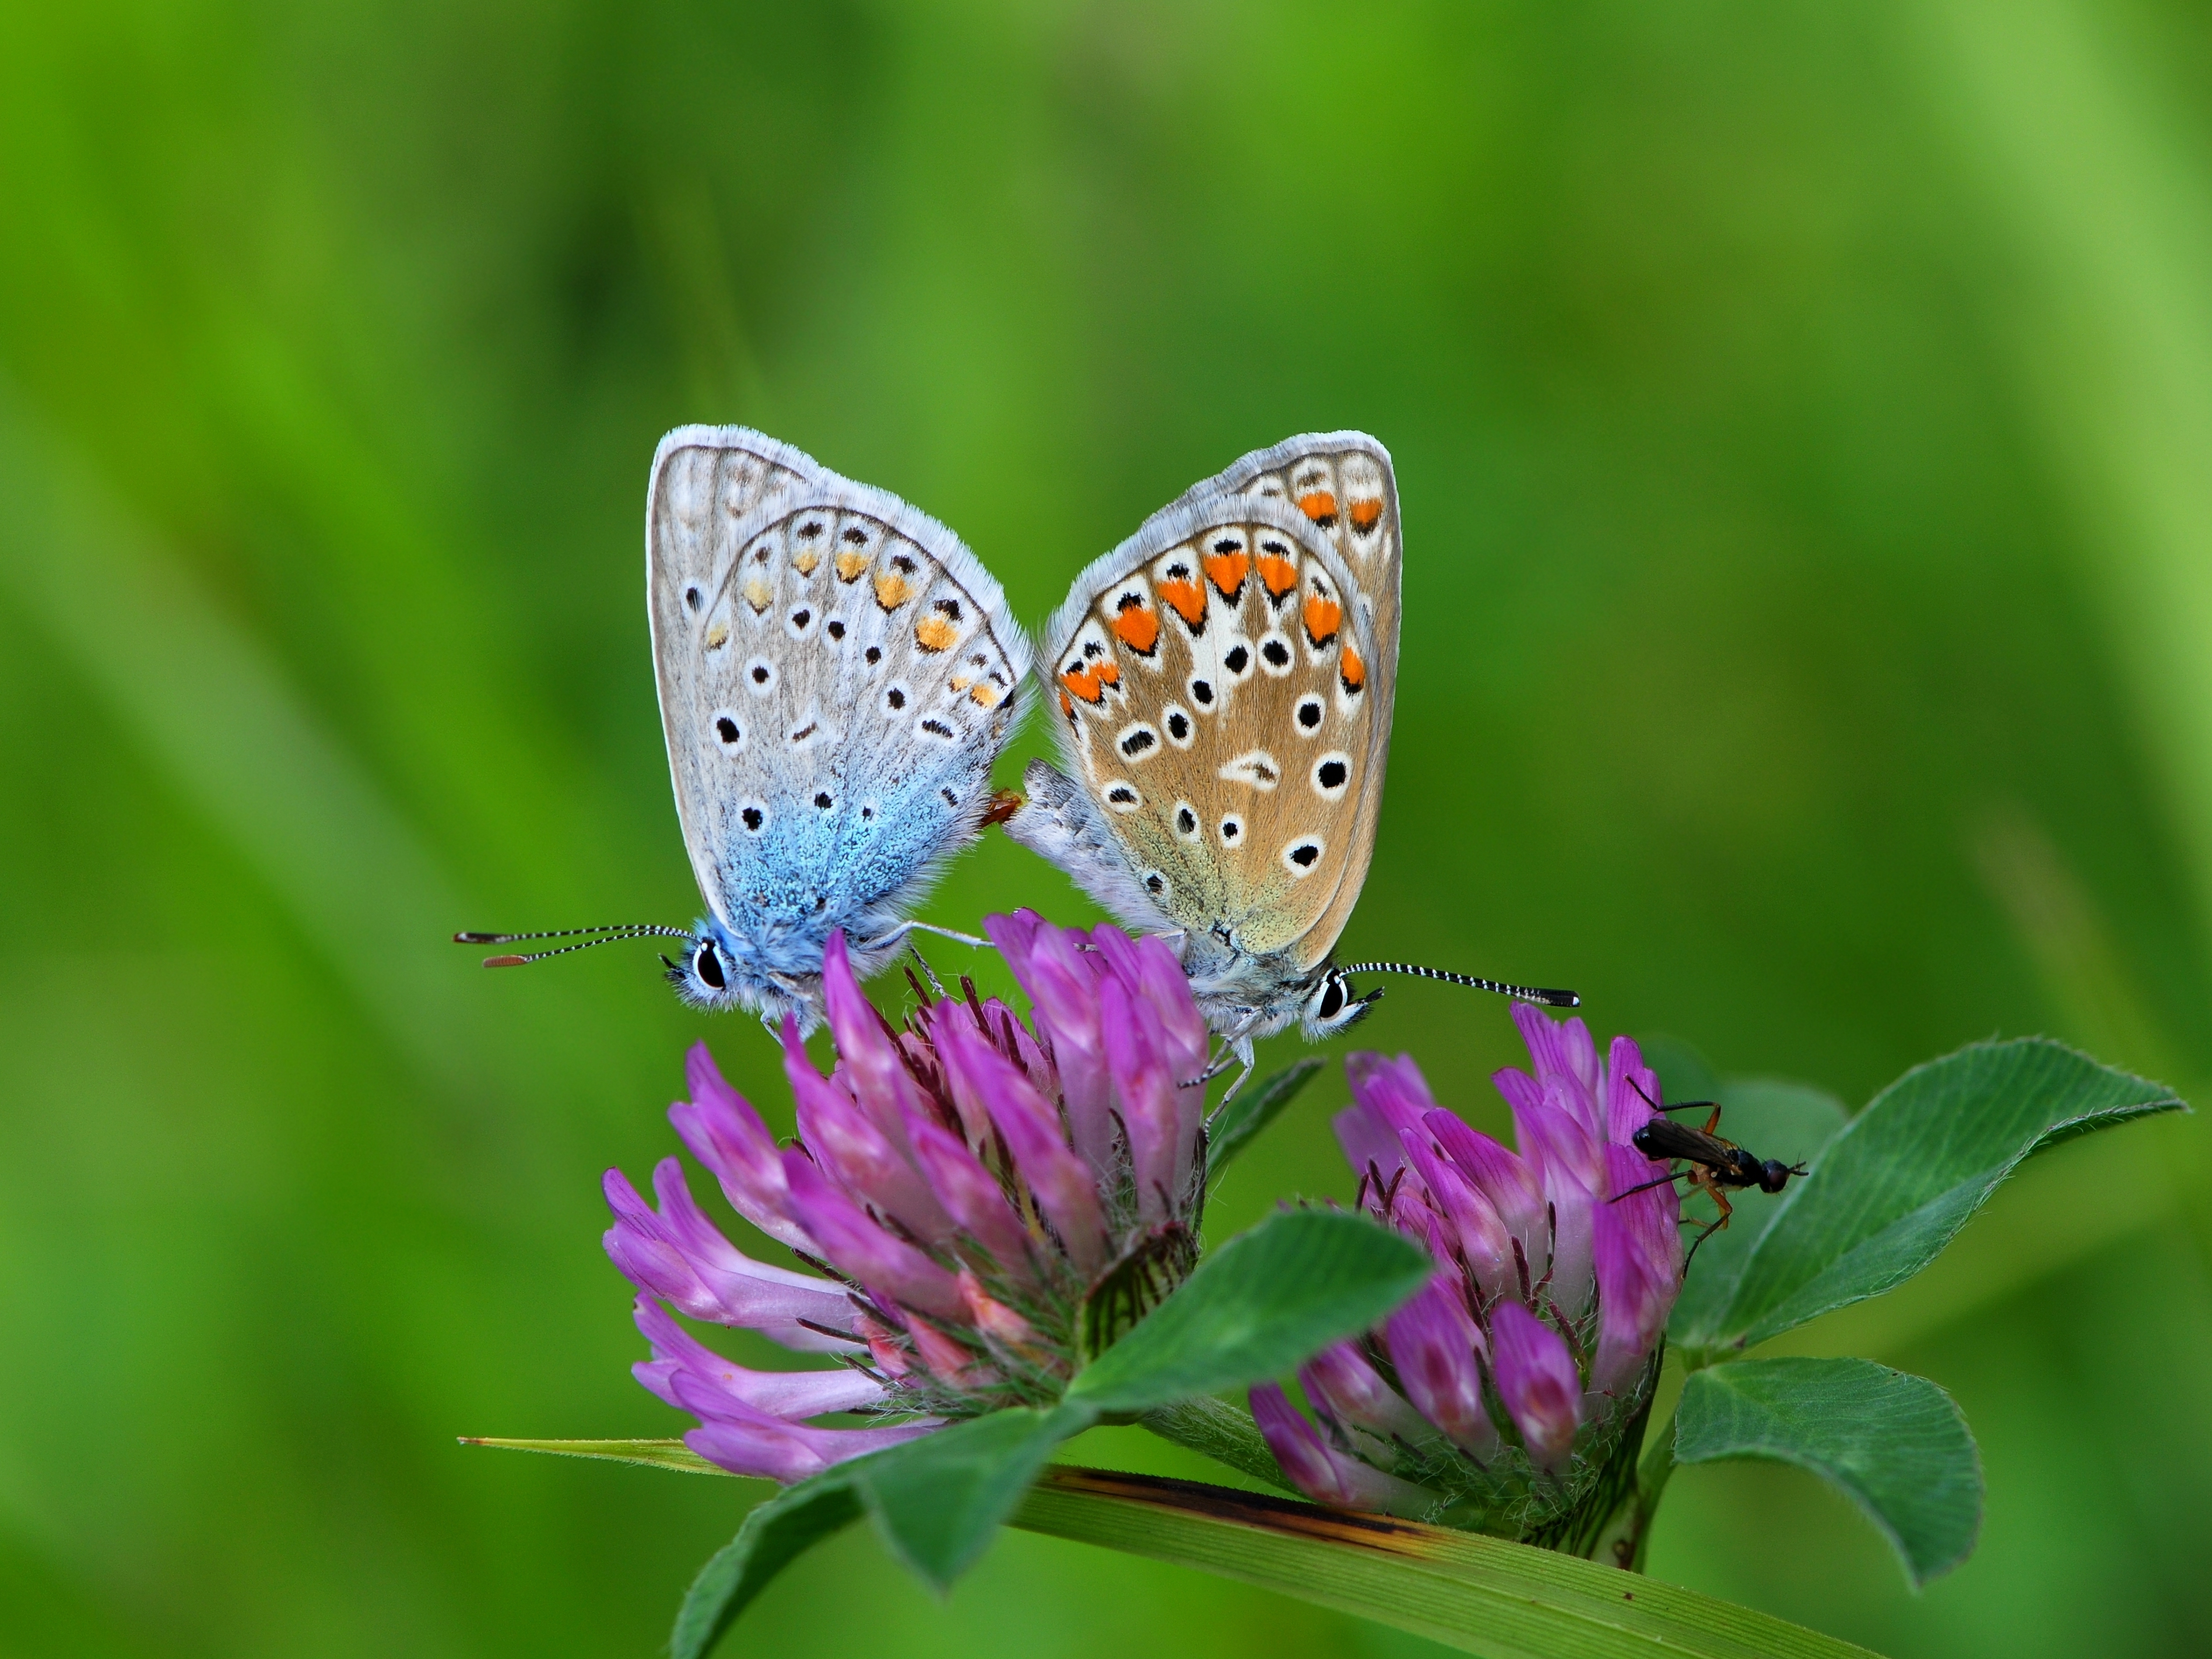 Two bright blue butterflies with spots and some small, reddish-orange details on the wings, stand backend-to-backend, mating. They are on a purple clover blossom, and the background is a rich green color.